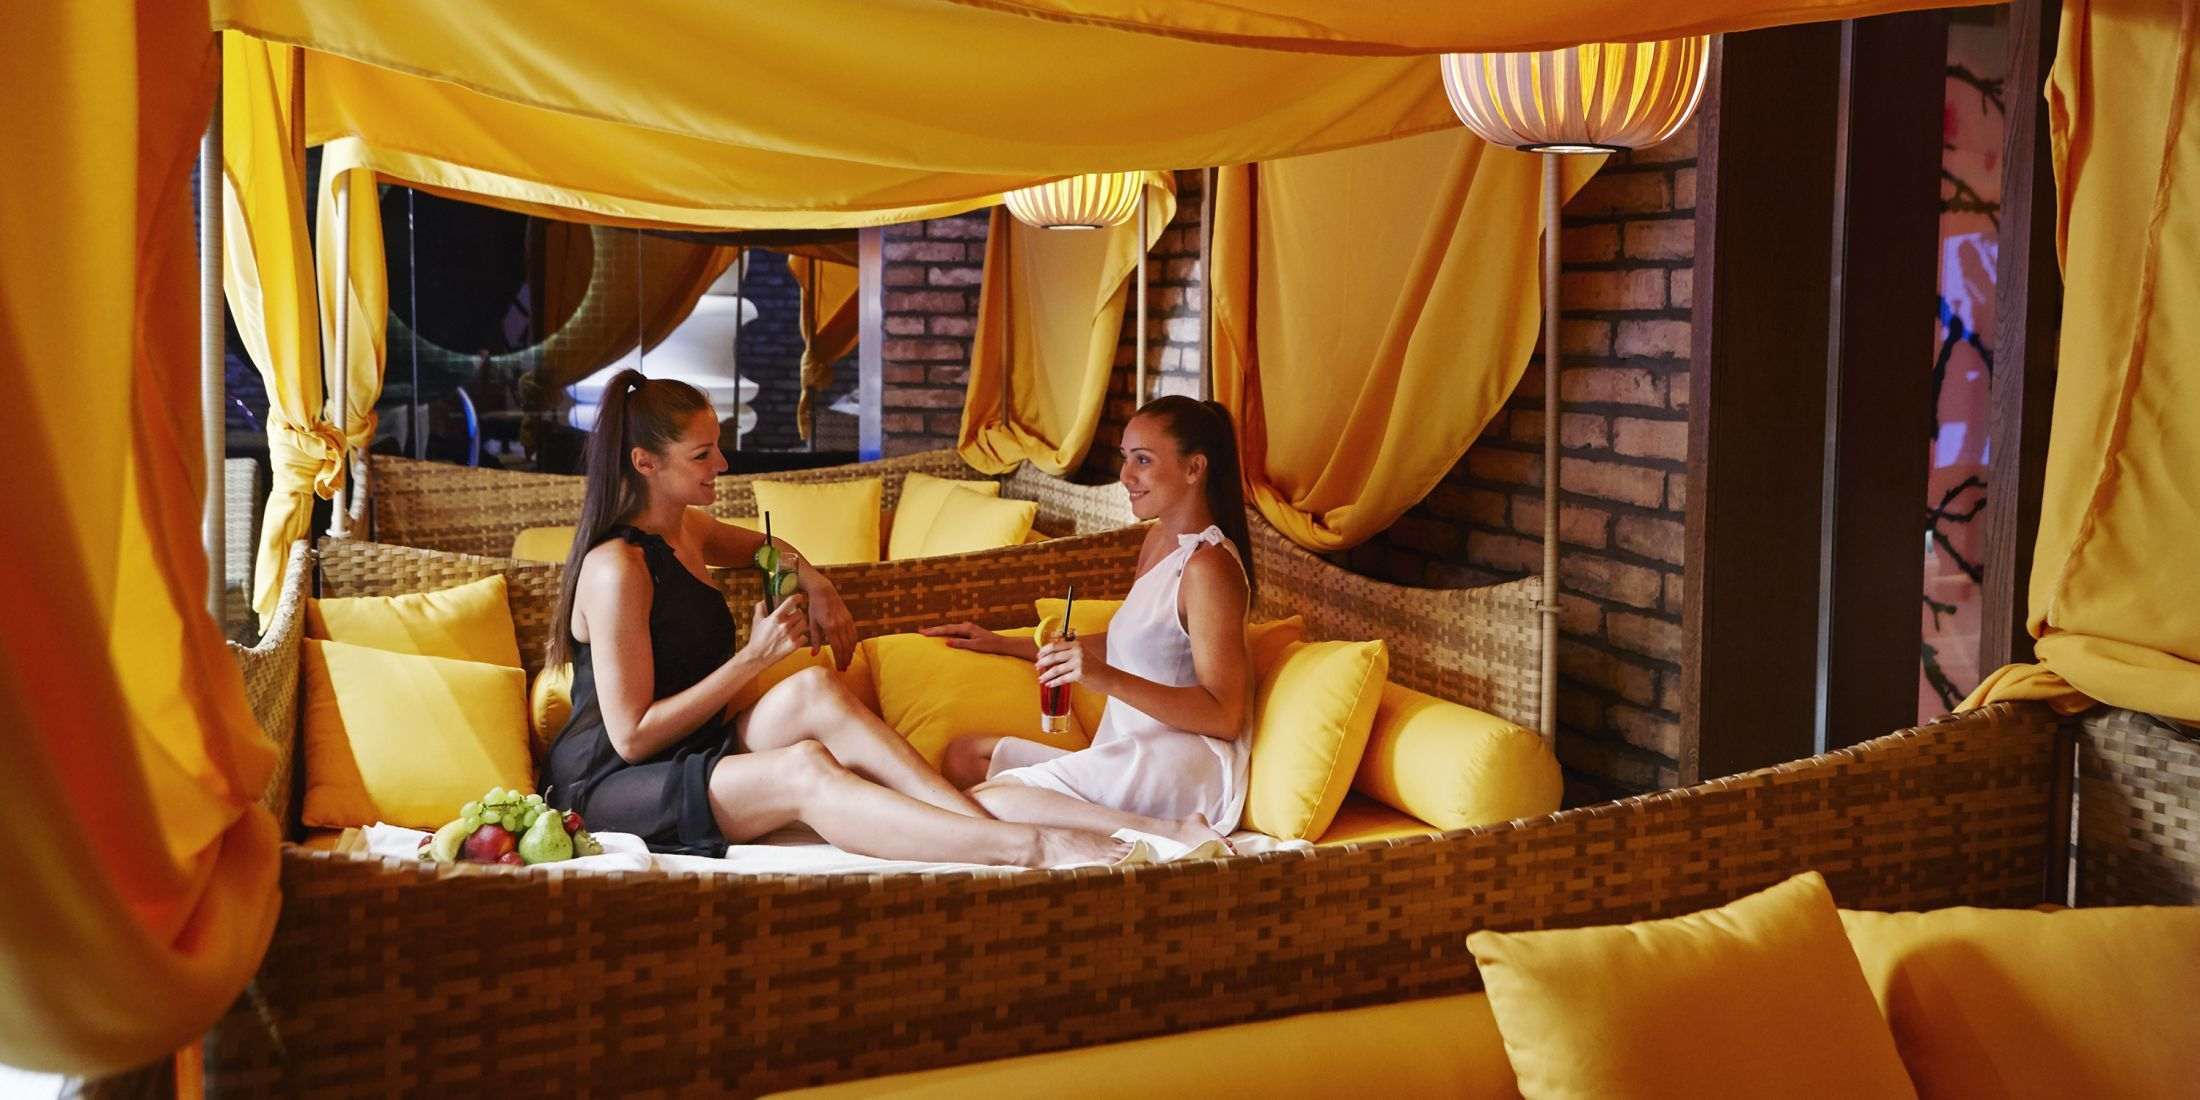 There are many yellow canopies poolside for guests to lounge in.